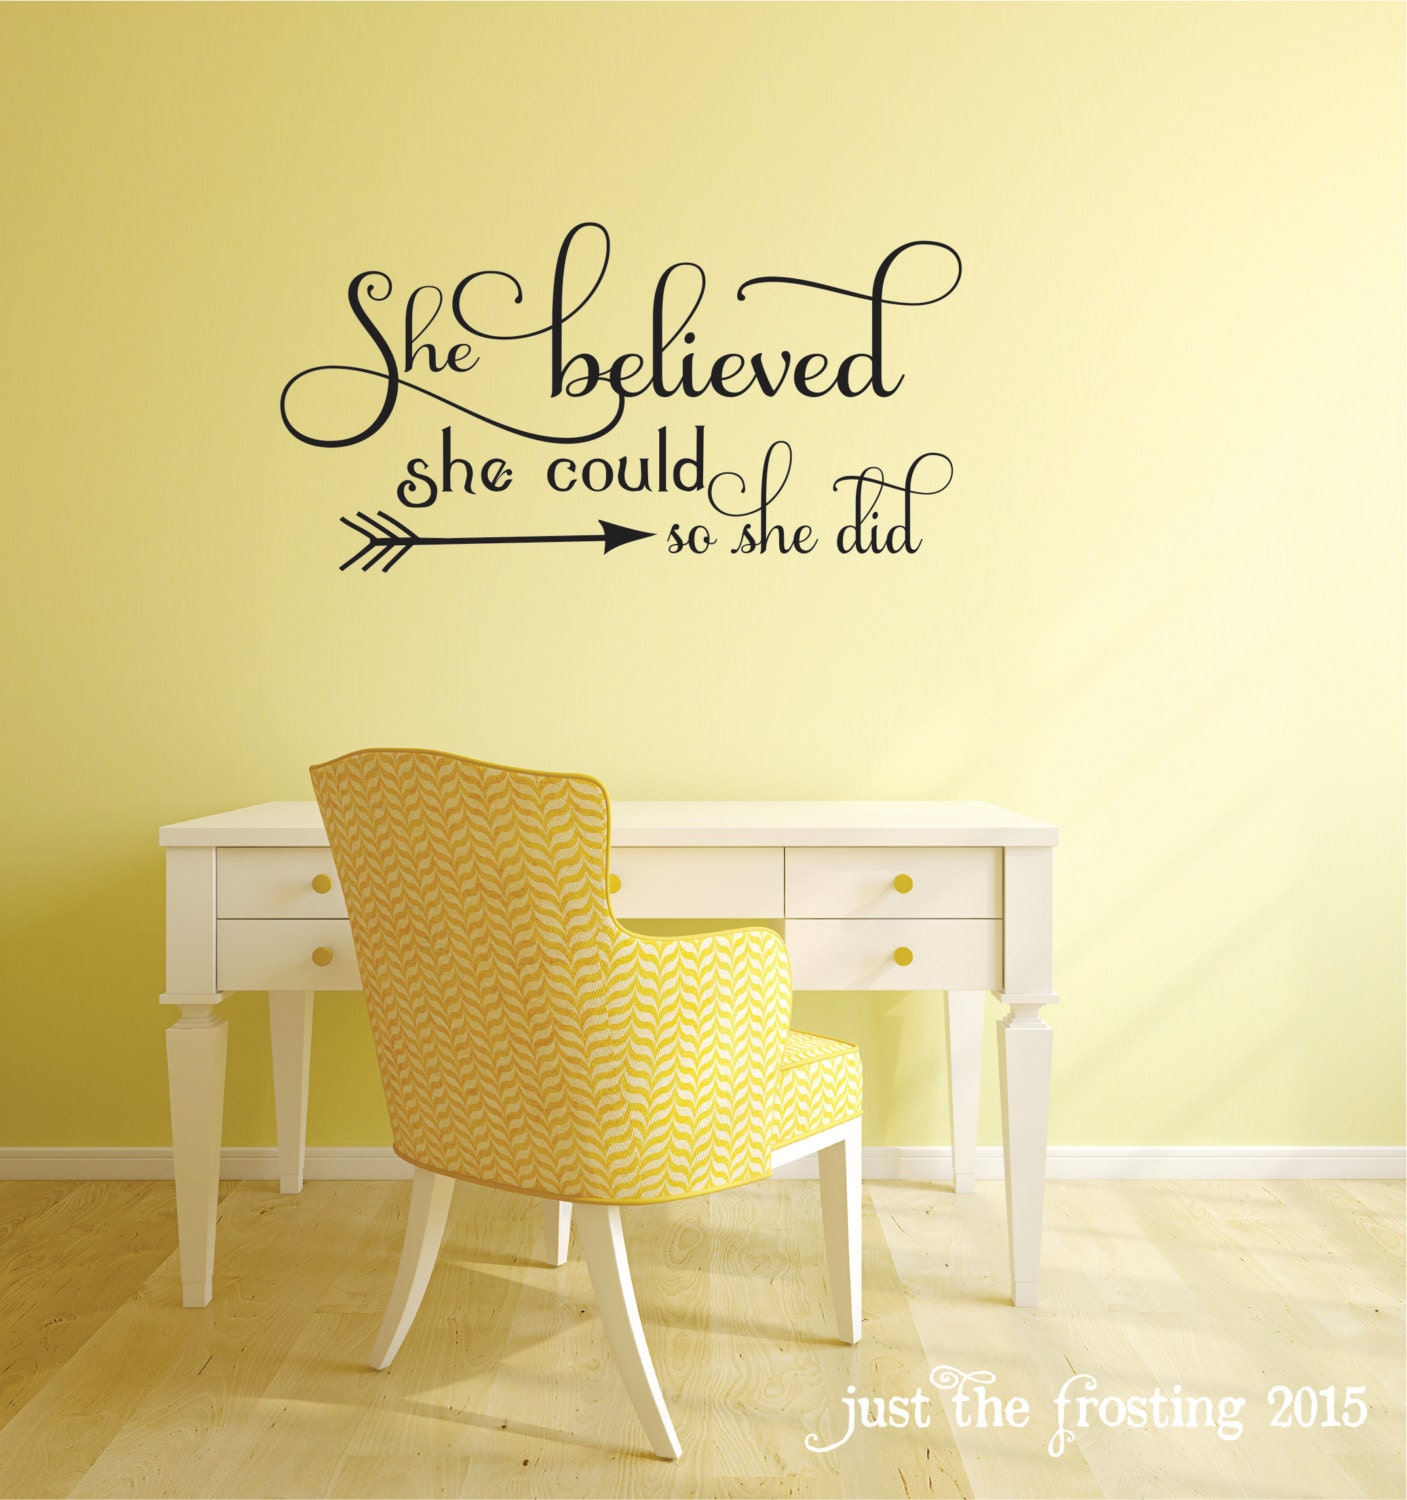 She believed she could quote bedroom wall decal office decor - Things to put on a wall ...